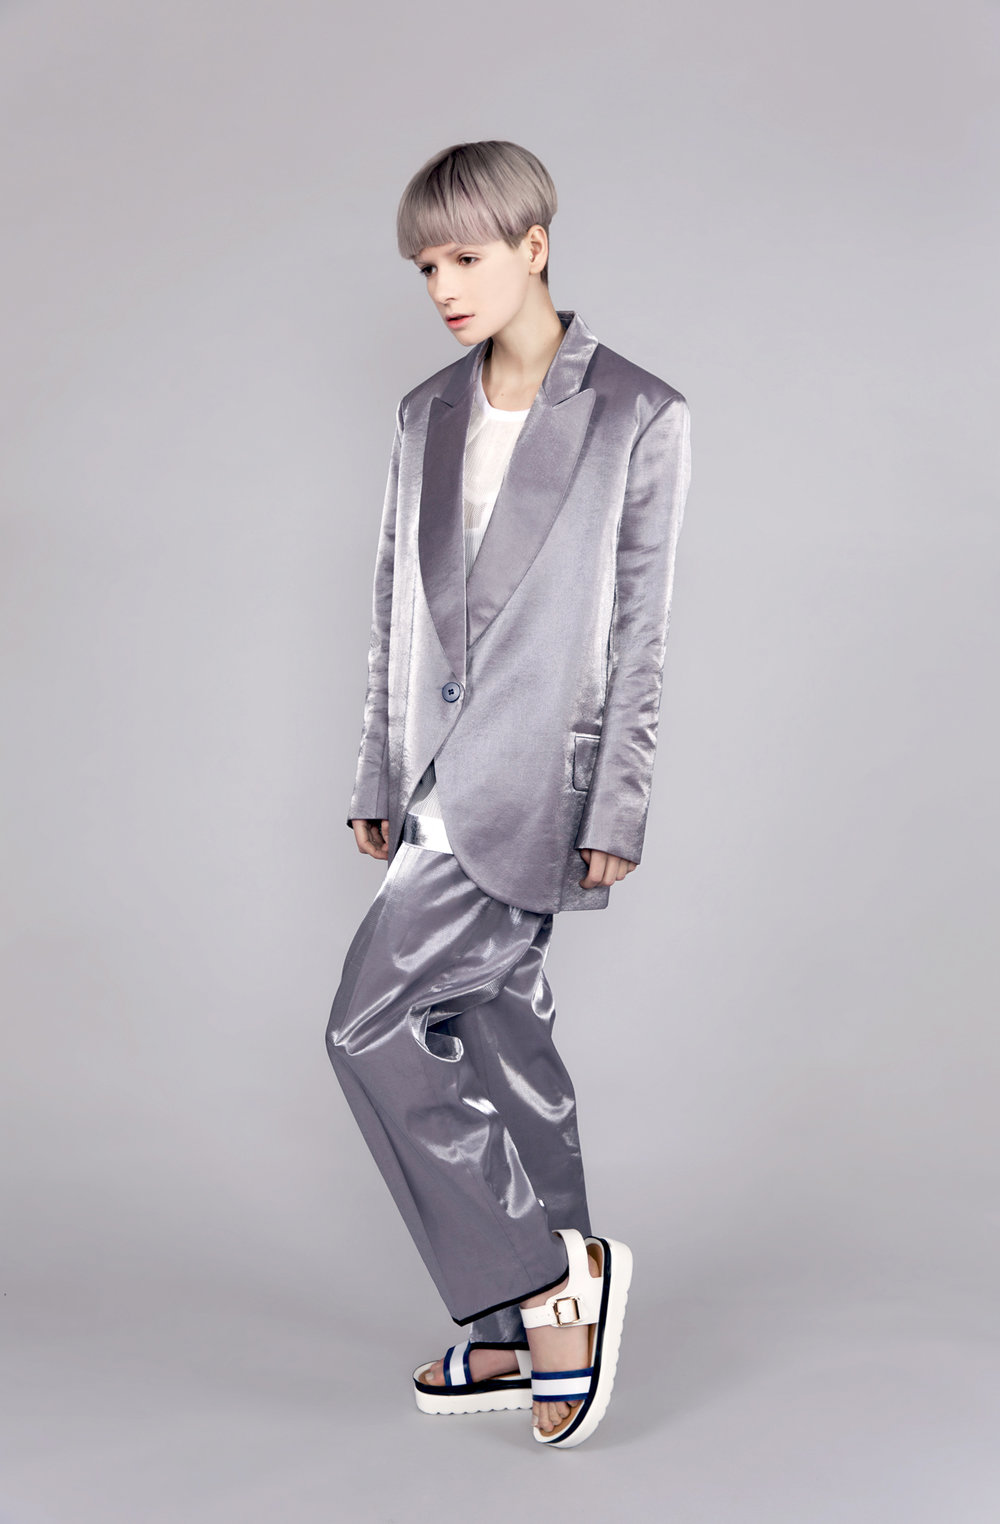 Copy of TriaBlake-SilverSuit_shopify copy.jpg